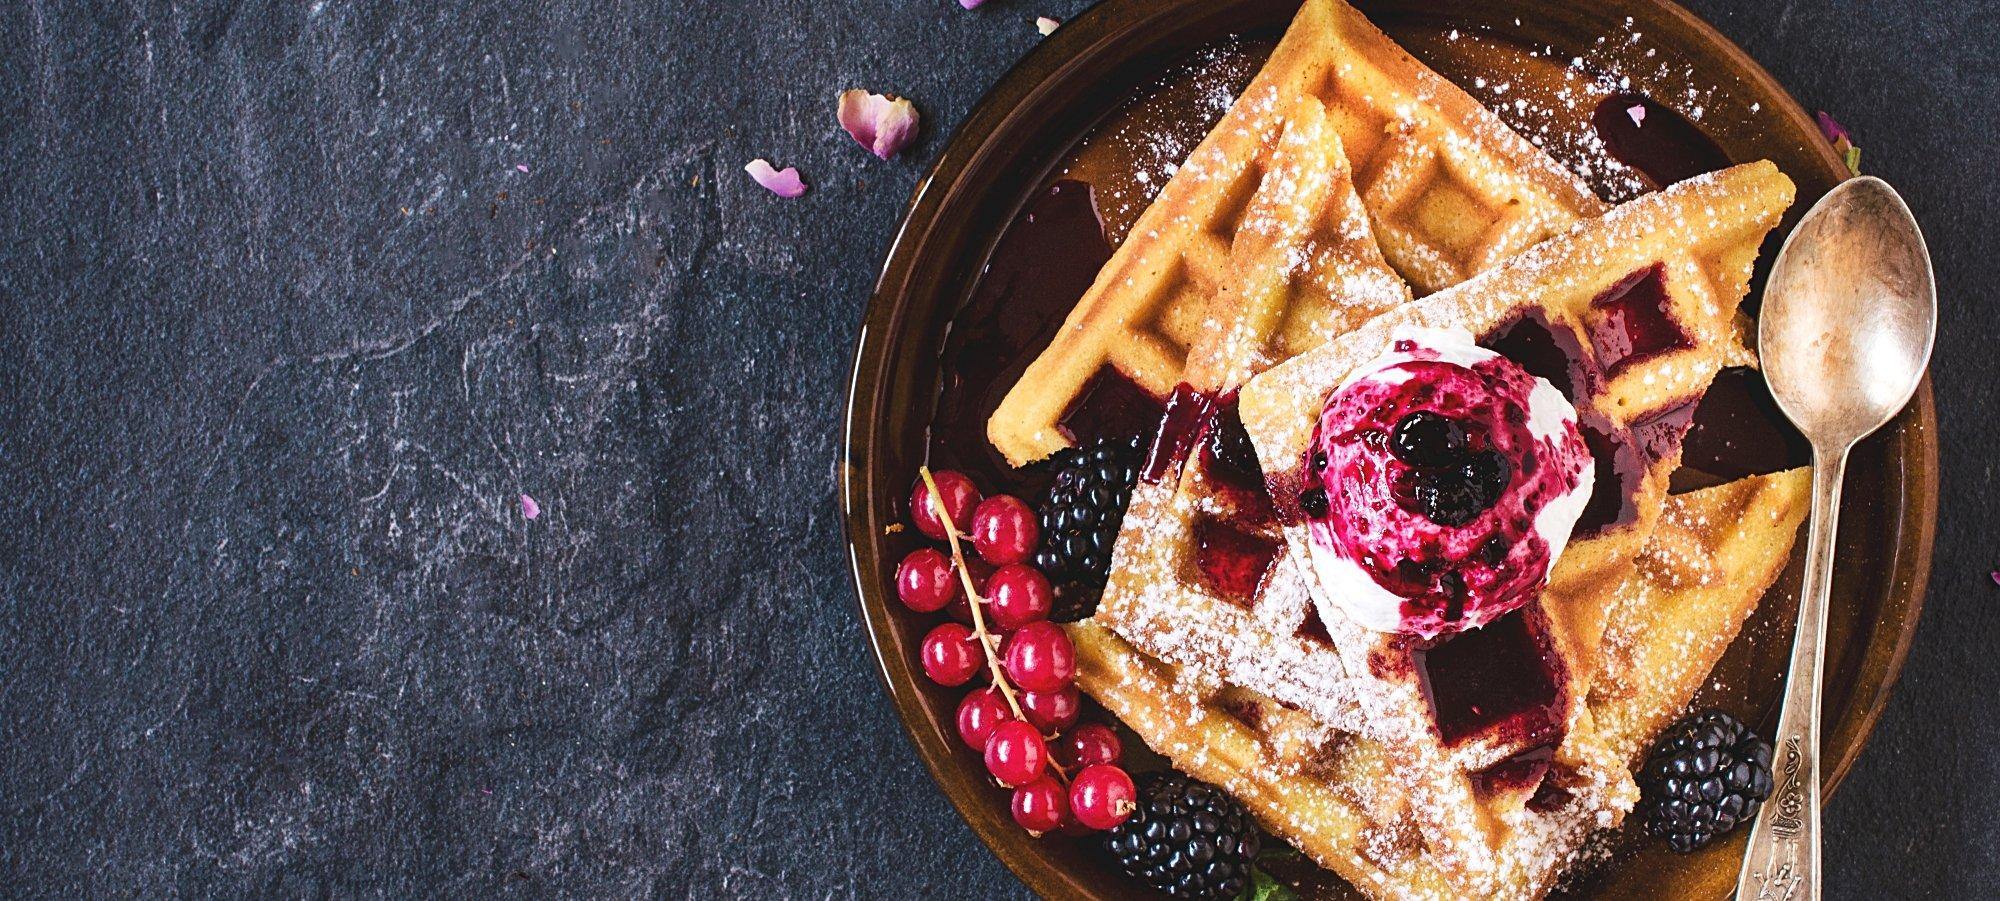 Traditional Belgian waffles with berry fruit jam.jpg